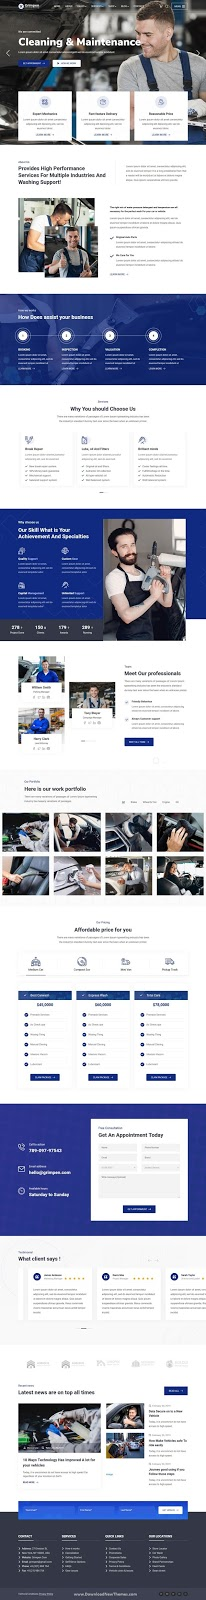 Auto Cleaning & Maintenance Template